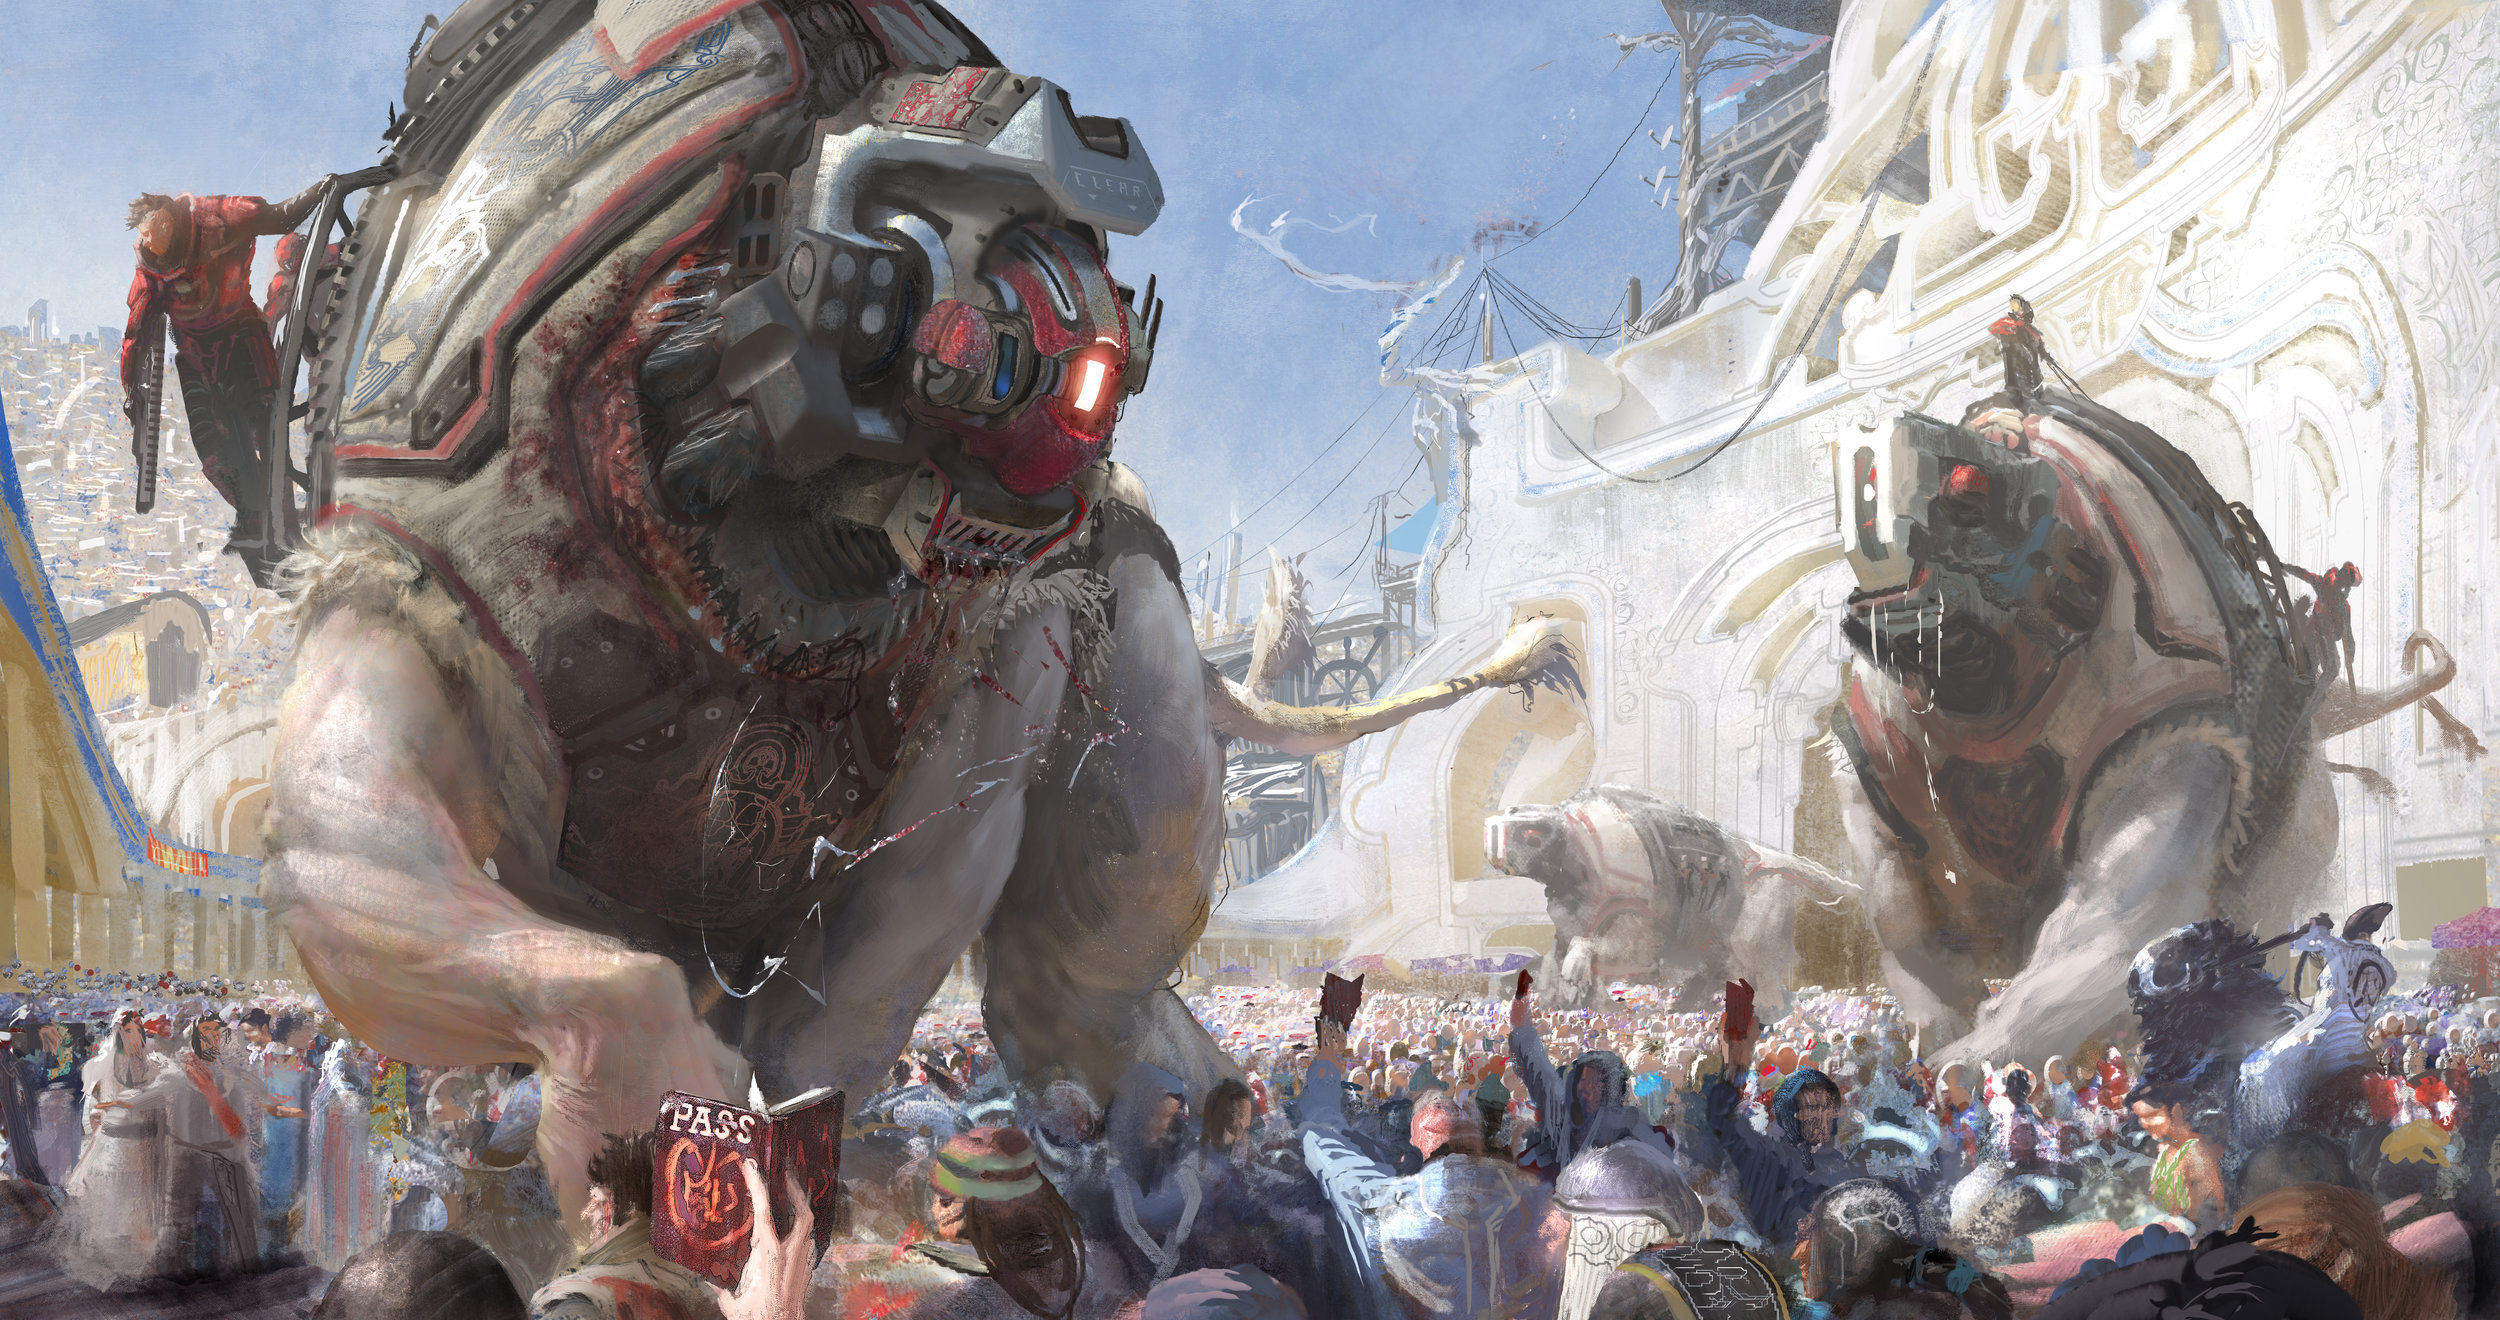 The Exquisite Fantasy & Sci-Fi Art of Campbell White